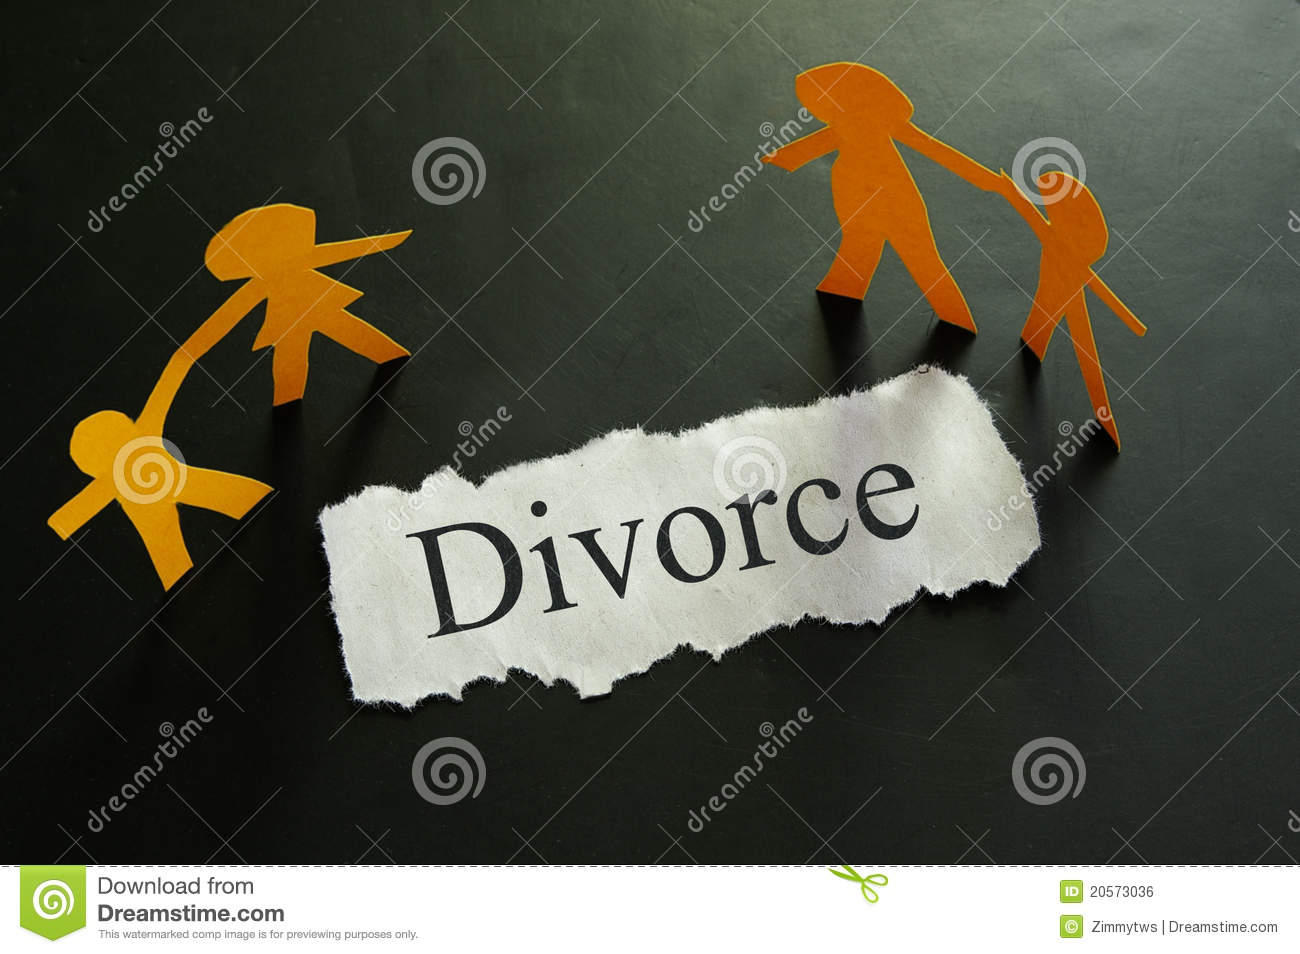 concepts of divorce essay Sociological aspects of divorce research paper starter homework help most people would probably view marriage as a more positive concept than divorce however quiz, and essay save time we've broken down the chapters, themes.